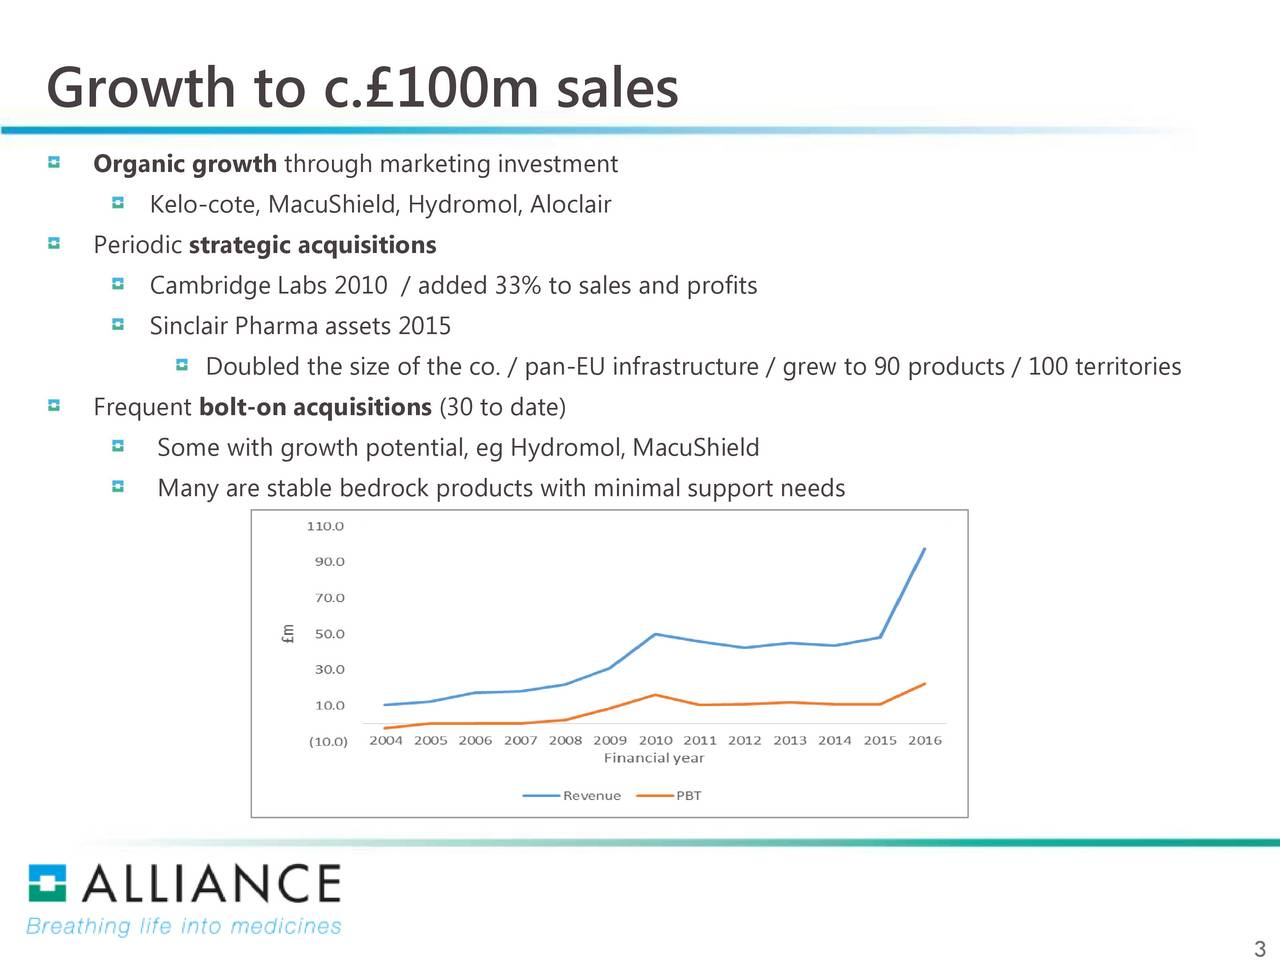 Organic growth through marketing investment Kelo-cote, MacuShield, Hydromol, Aloclair Periodic strategic acquisitions Cambridge Labs 2010 / added 33% to sales and profits Sinclair Pharma assets 2015 Doubled the size of the co. / pan-EU infrastructure / grew to 90 products / 100 territories Frequent bolt-on acquisitions (30 to date) Some with growth potential, eg Hydromol, MacuShield Many are stable bedrock products with minimal support needs